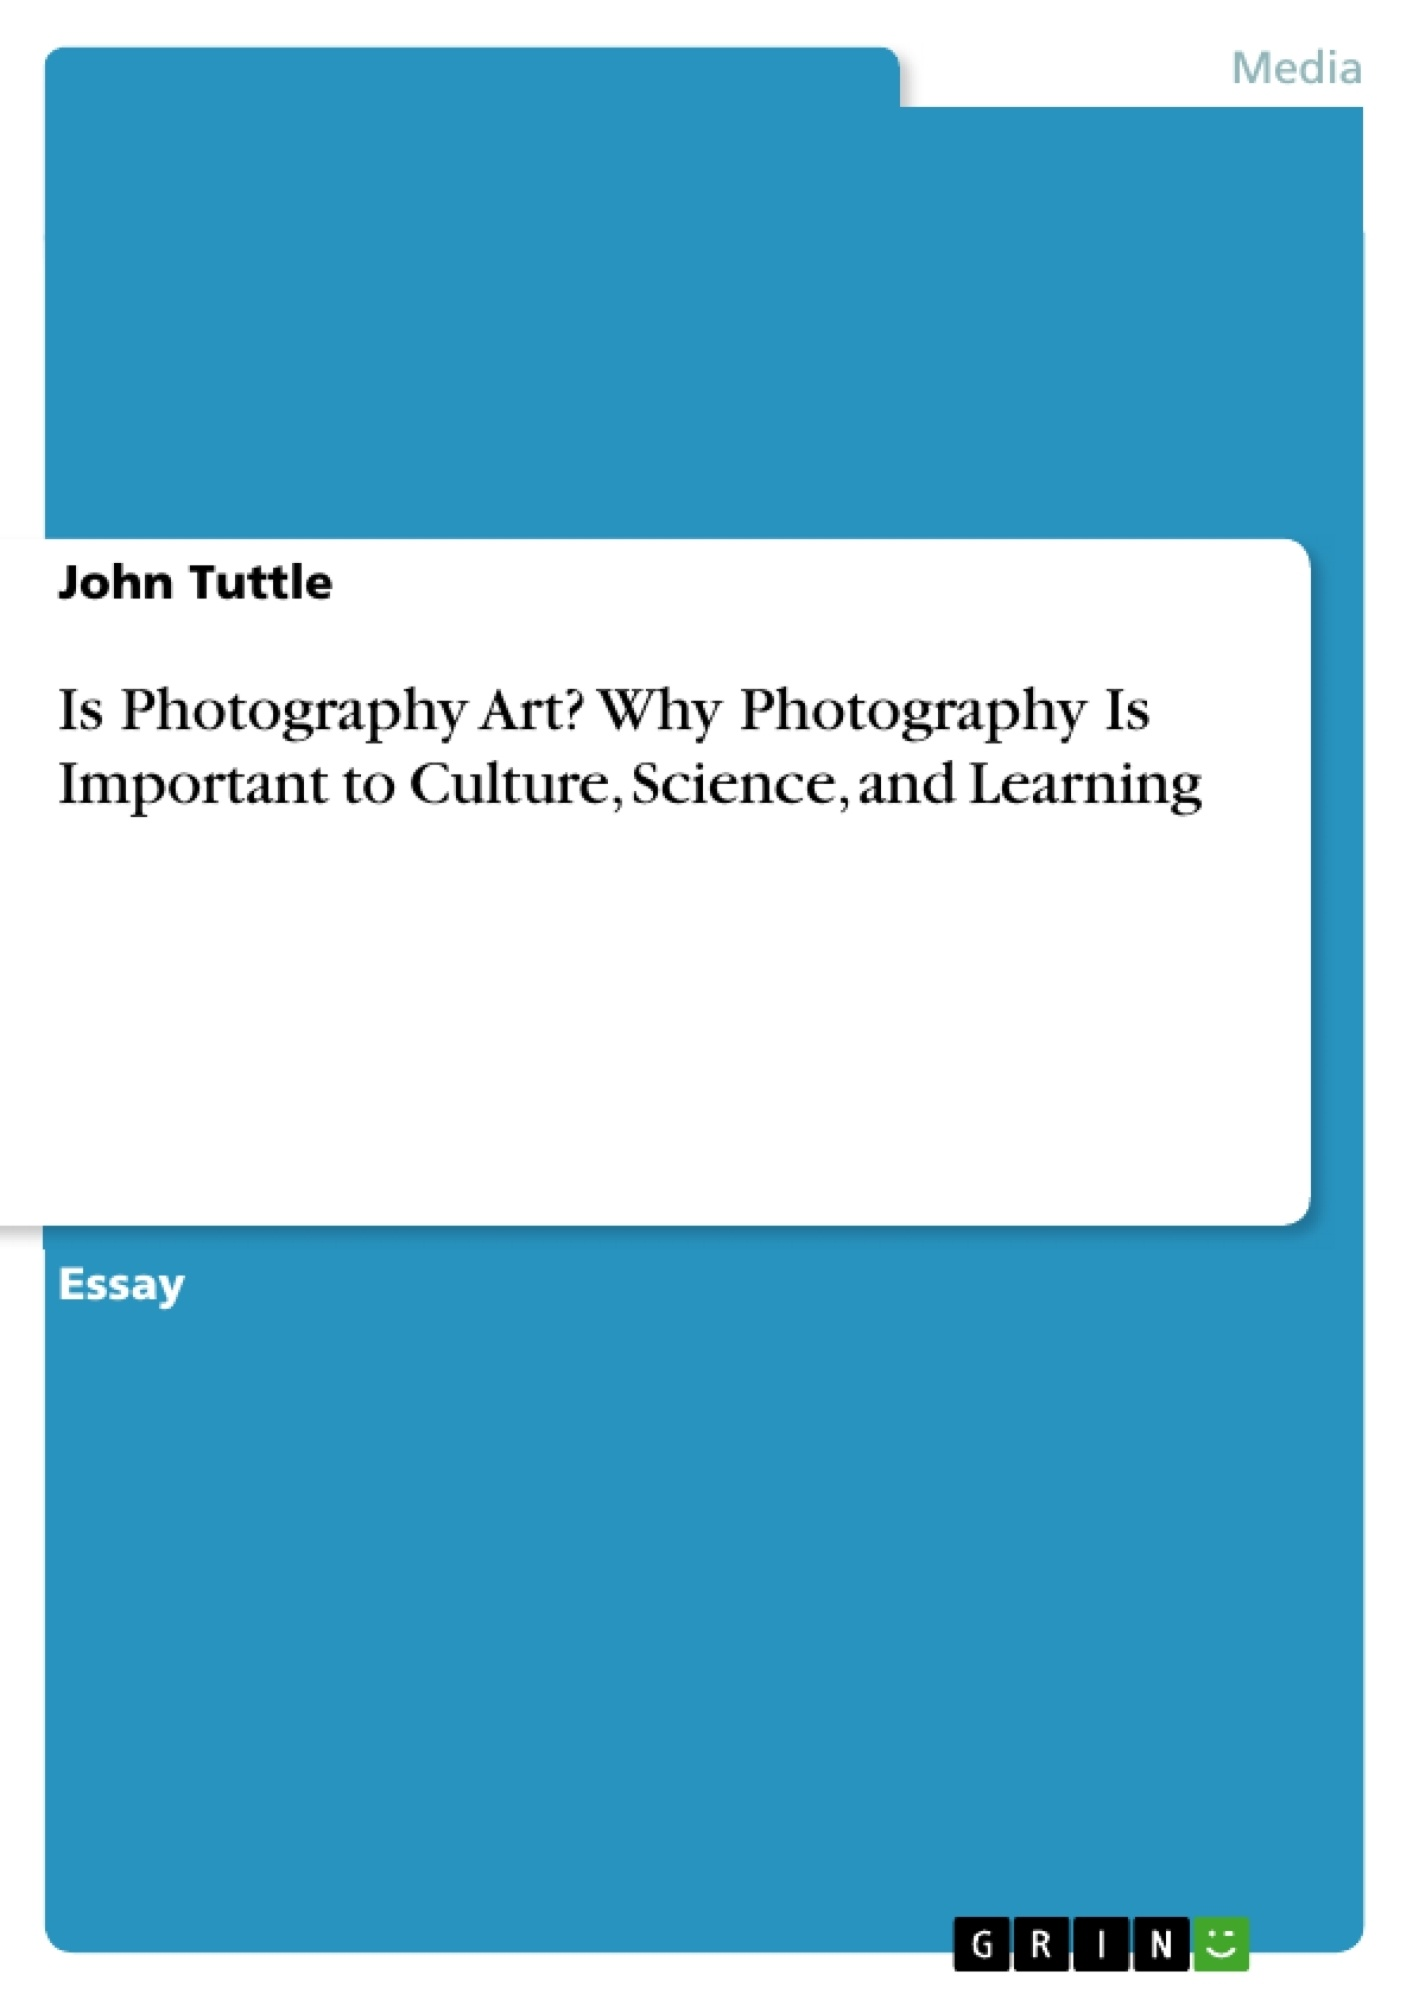 Title: Is Photography Art? Why Photography Is Important to Culture, Science, and Learning